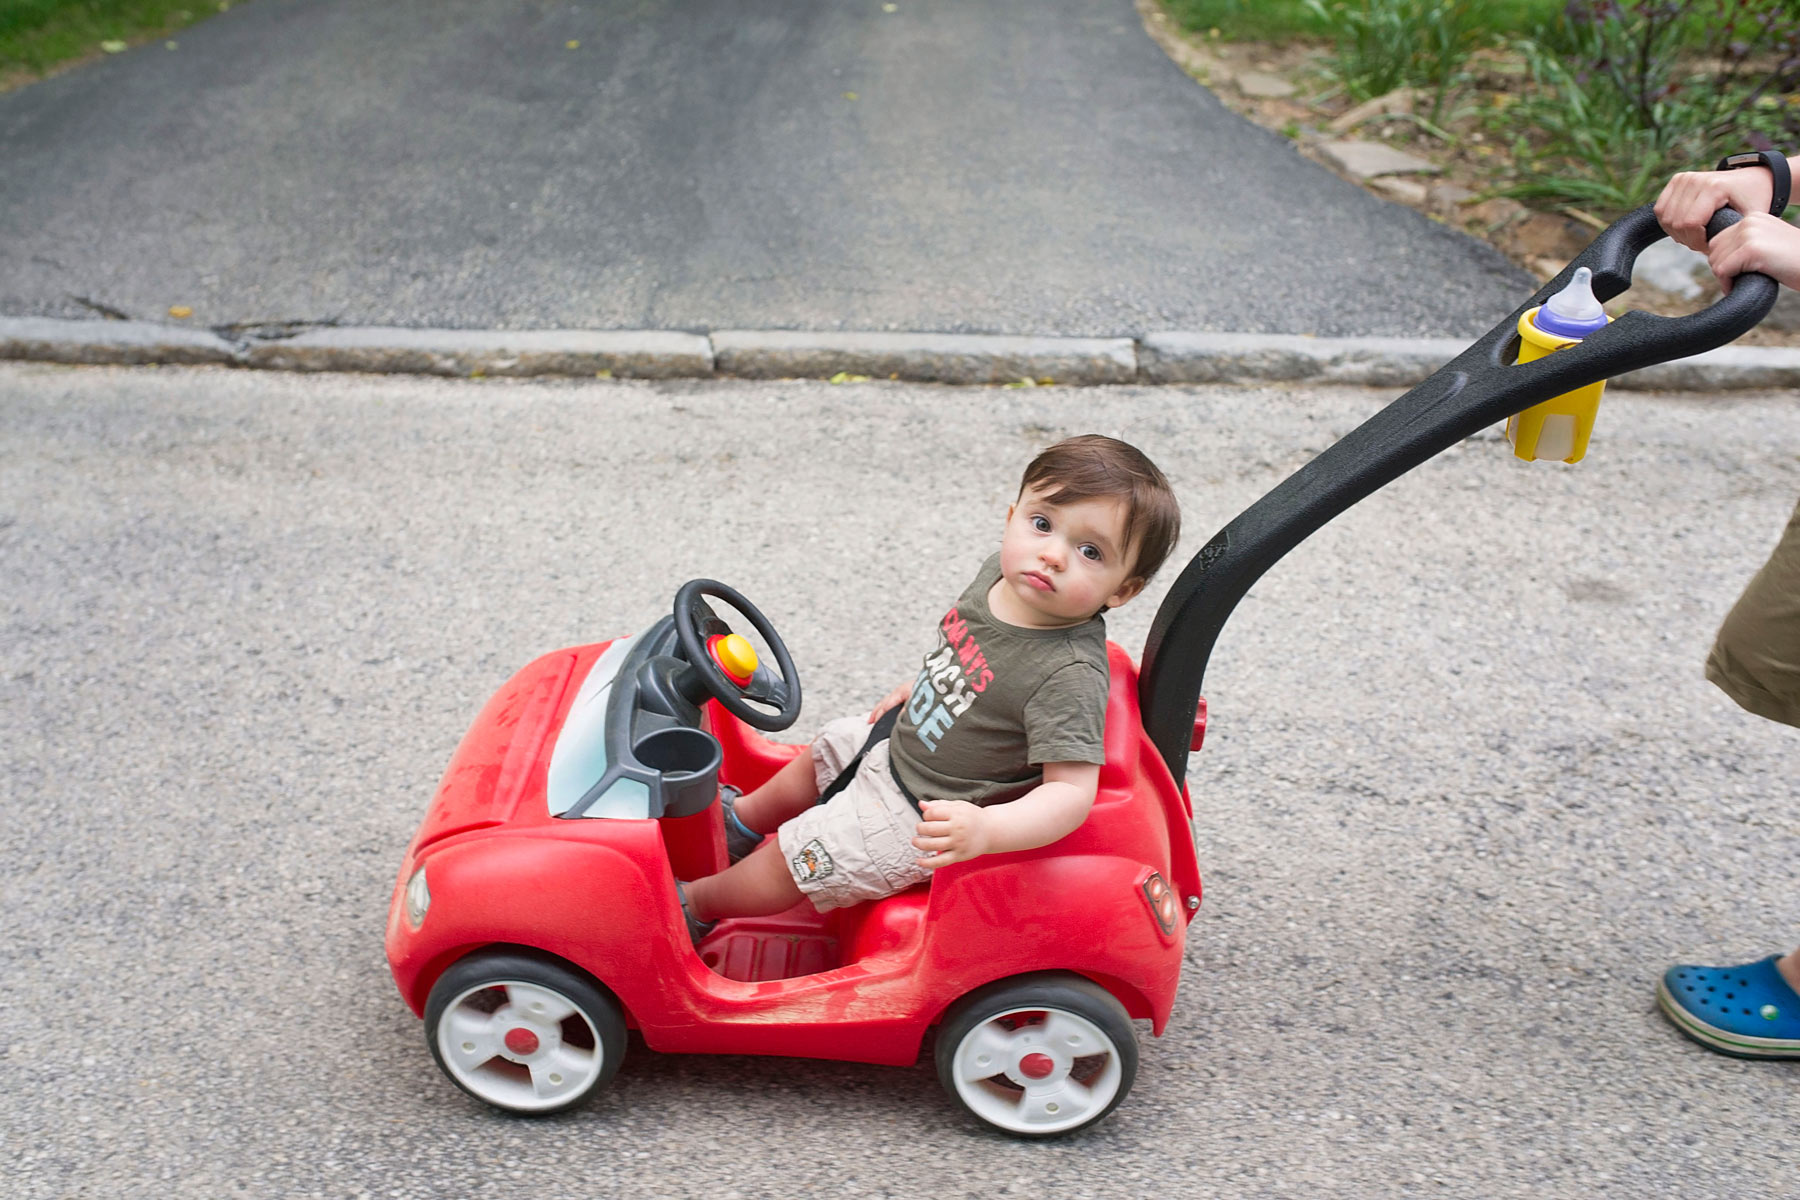 youngest brother gets pushed in red car by oldest brother